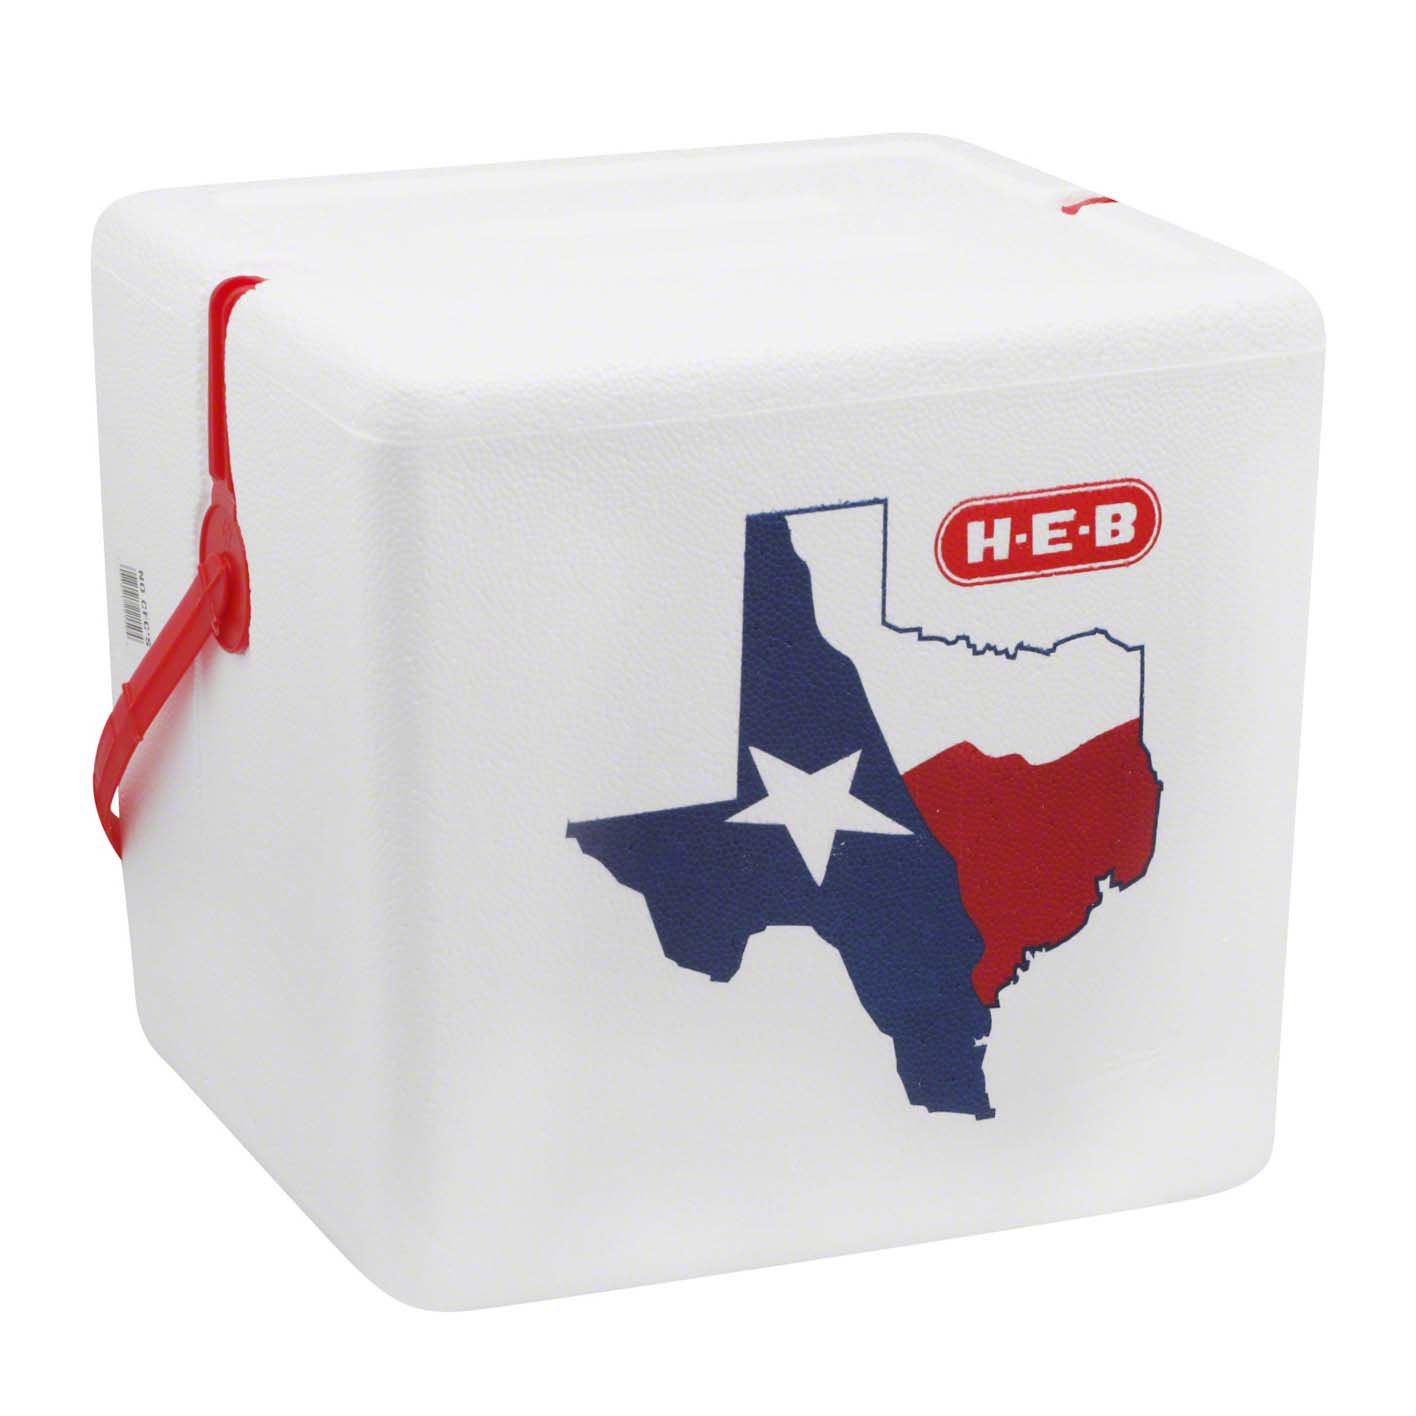 Coolers & Ice Packs - Shop H-E-B Everyday Low Prices